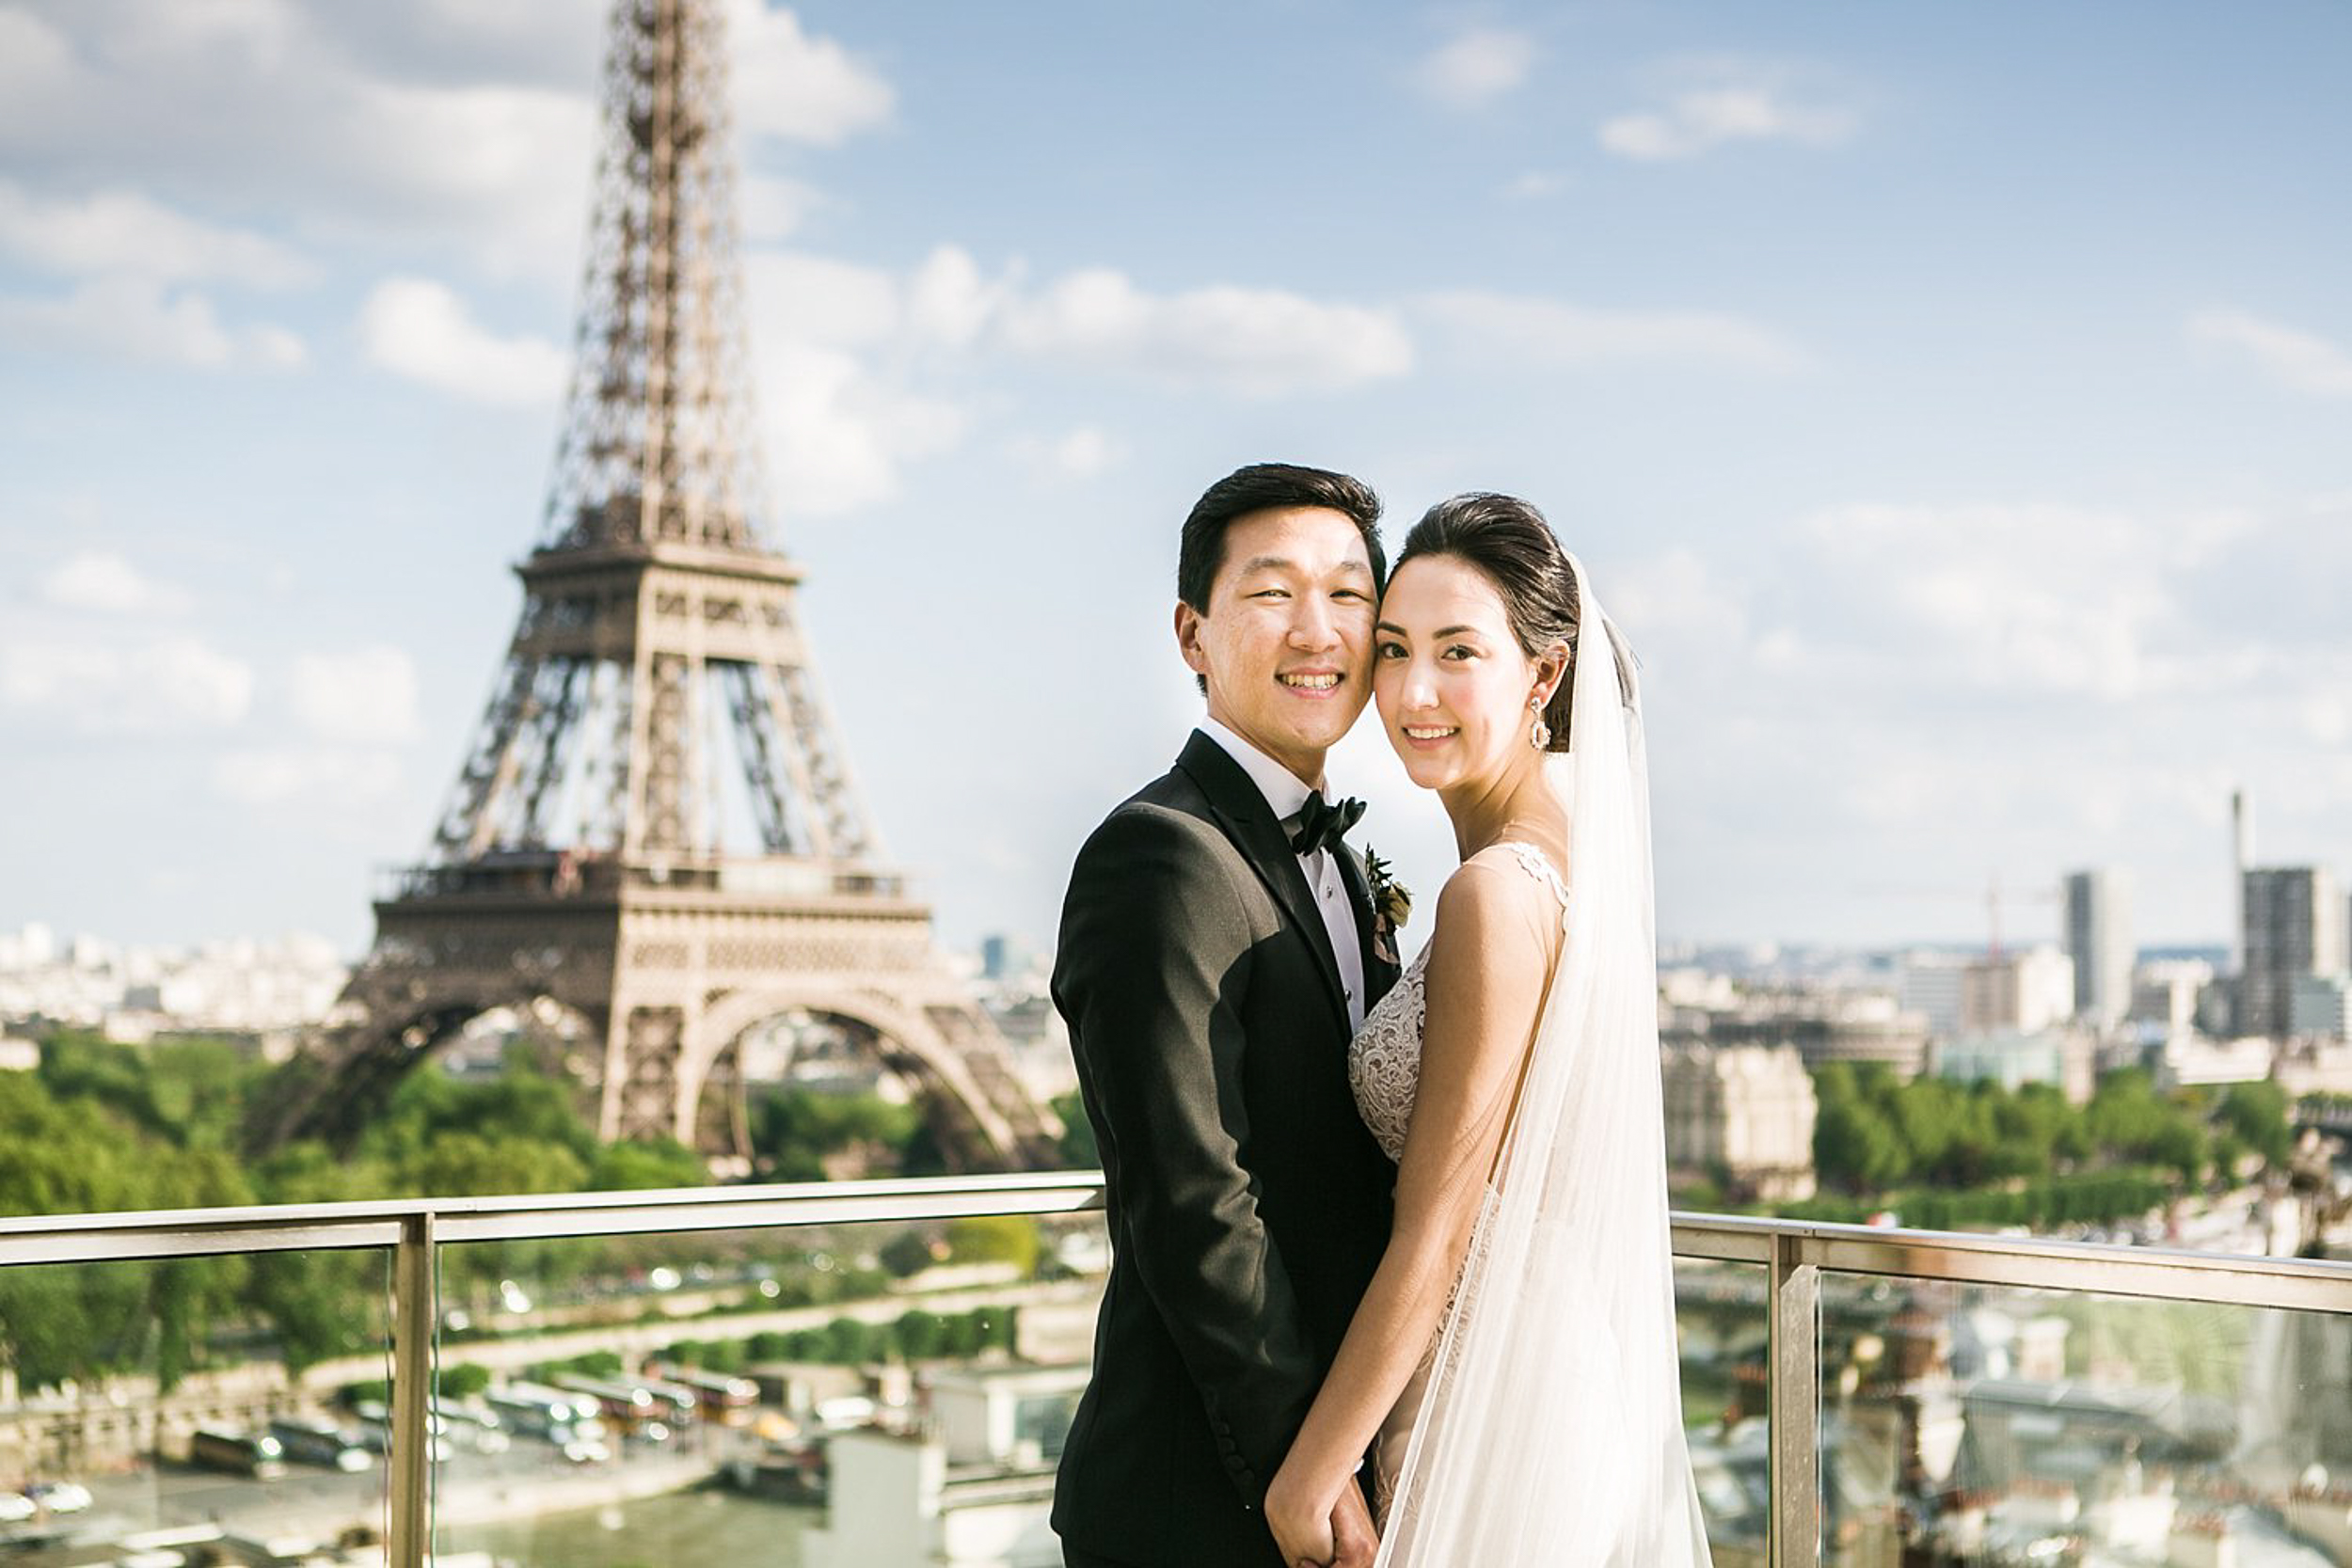 english-speaking-wedding-elopement-photographer-paris-france-306.jpg